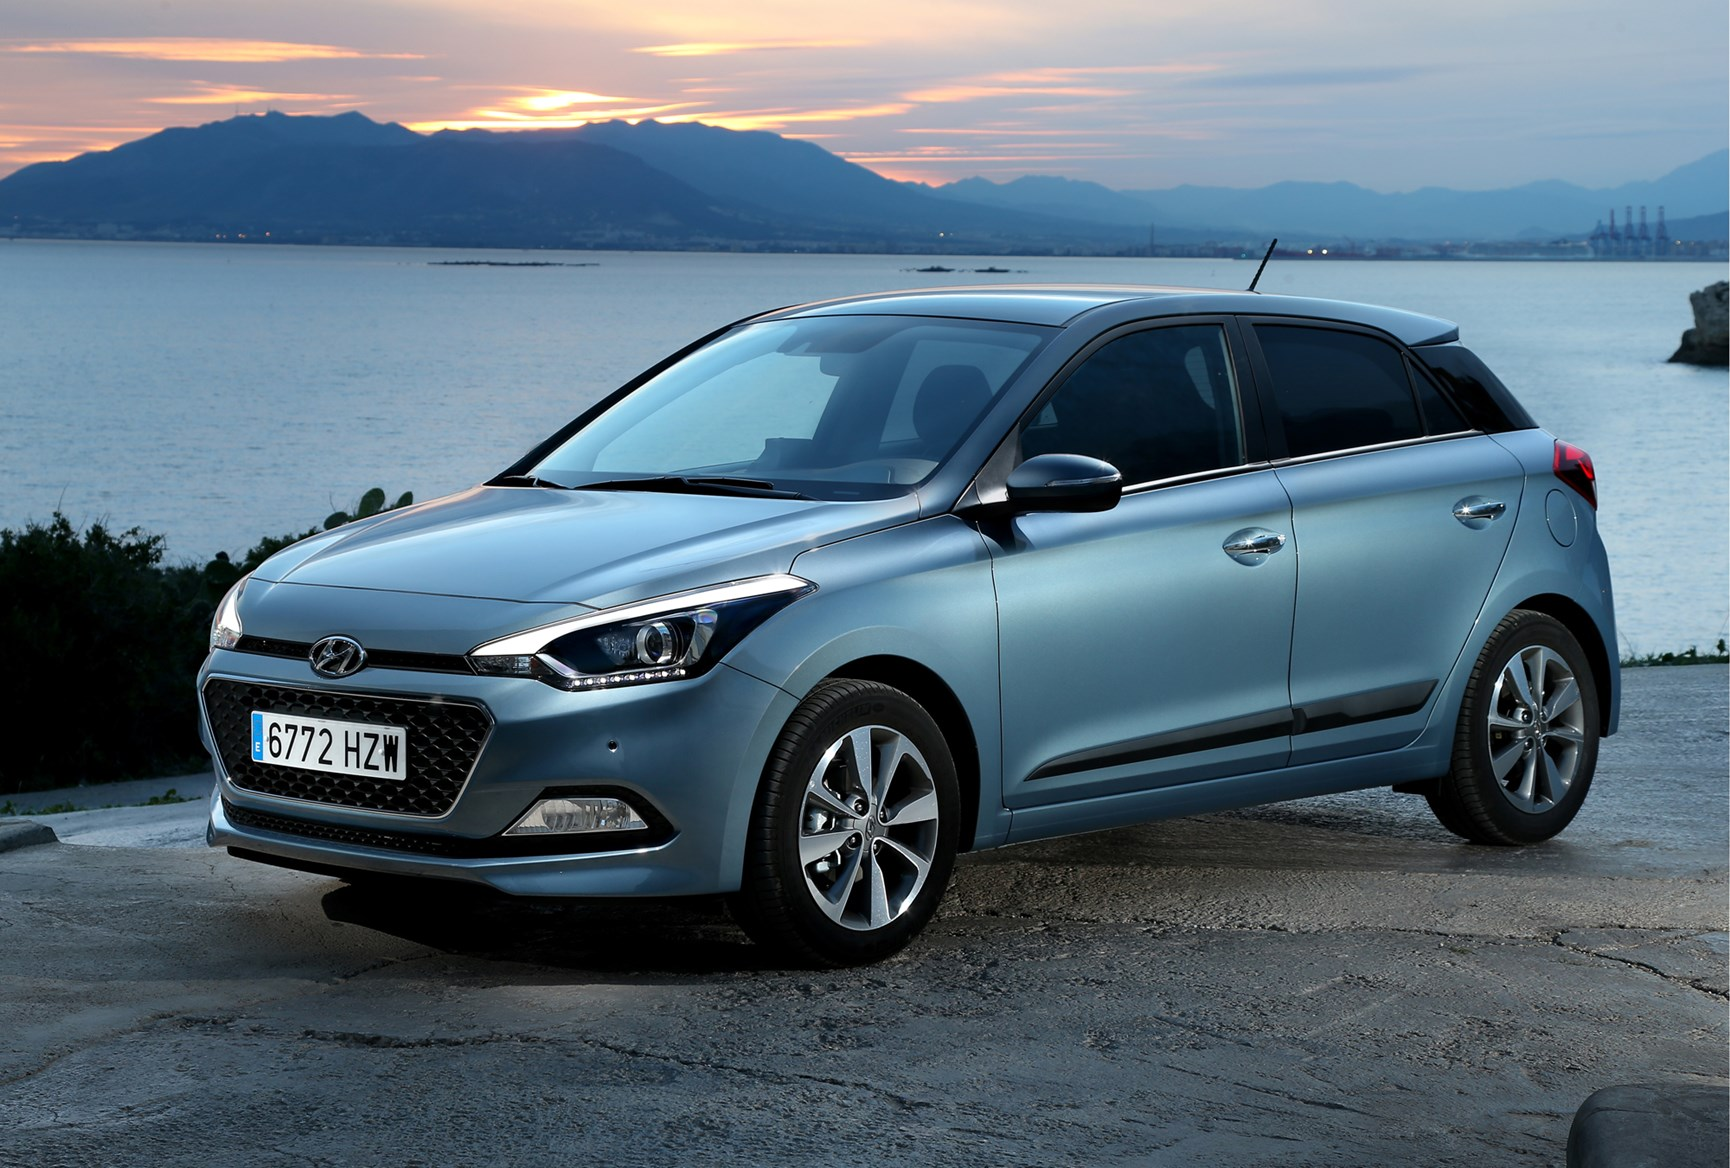 Hyundai i20 Hatchback (2015 - ) Photos | Parkers